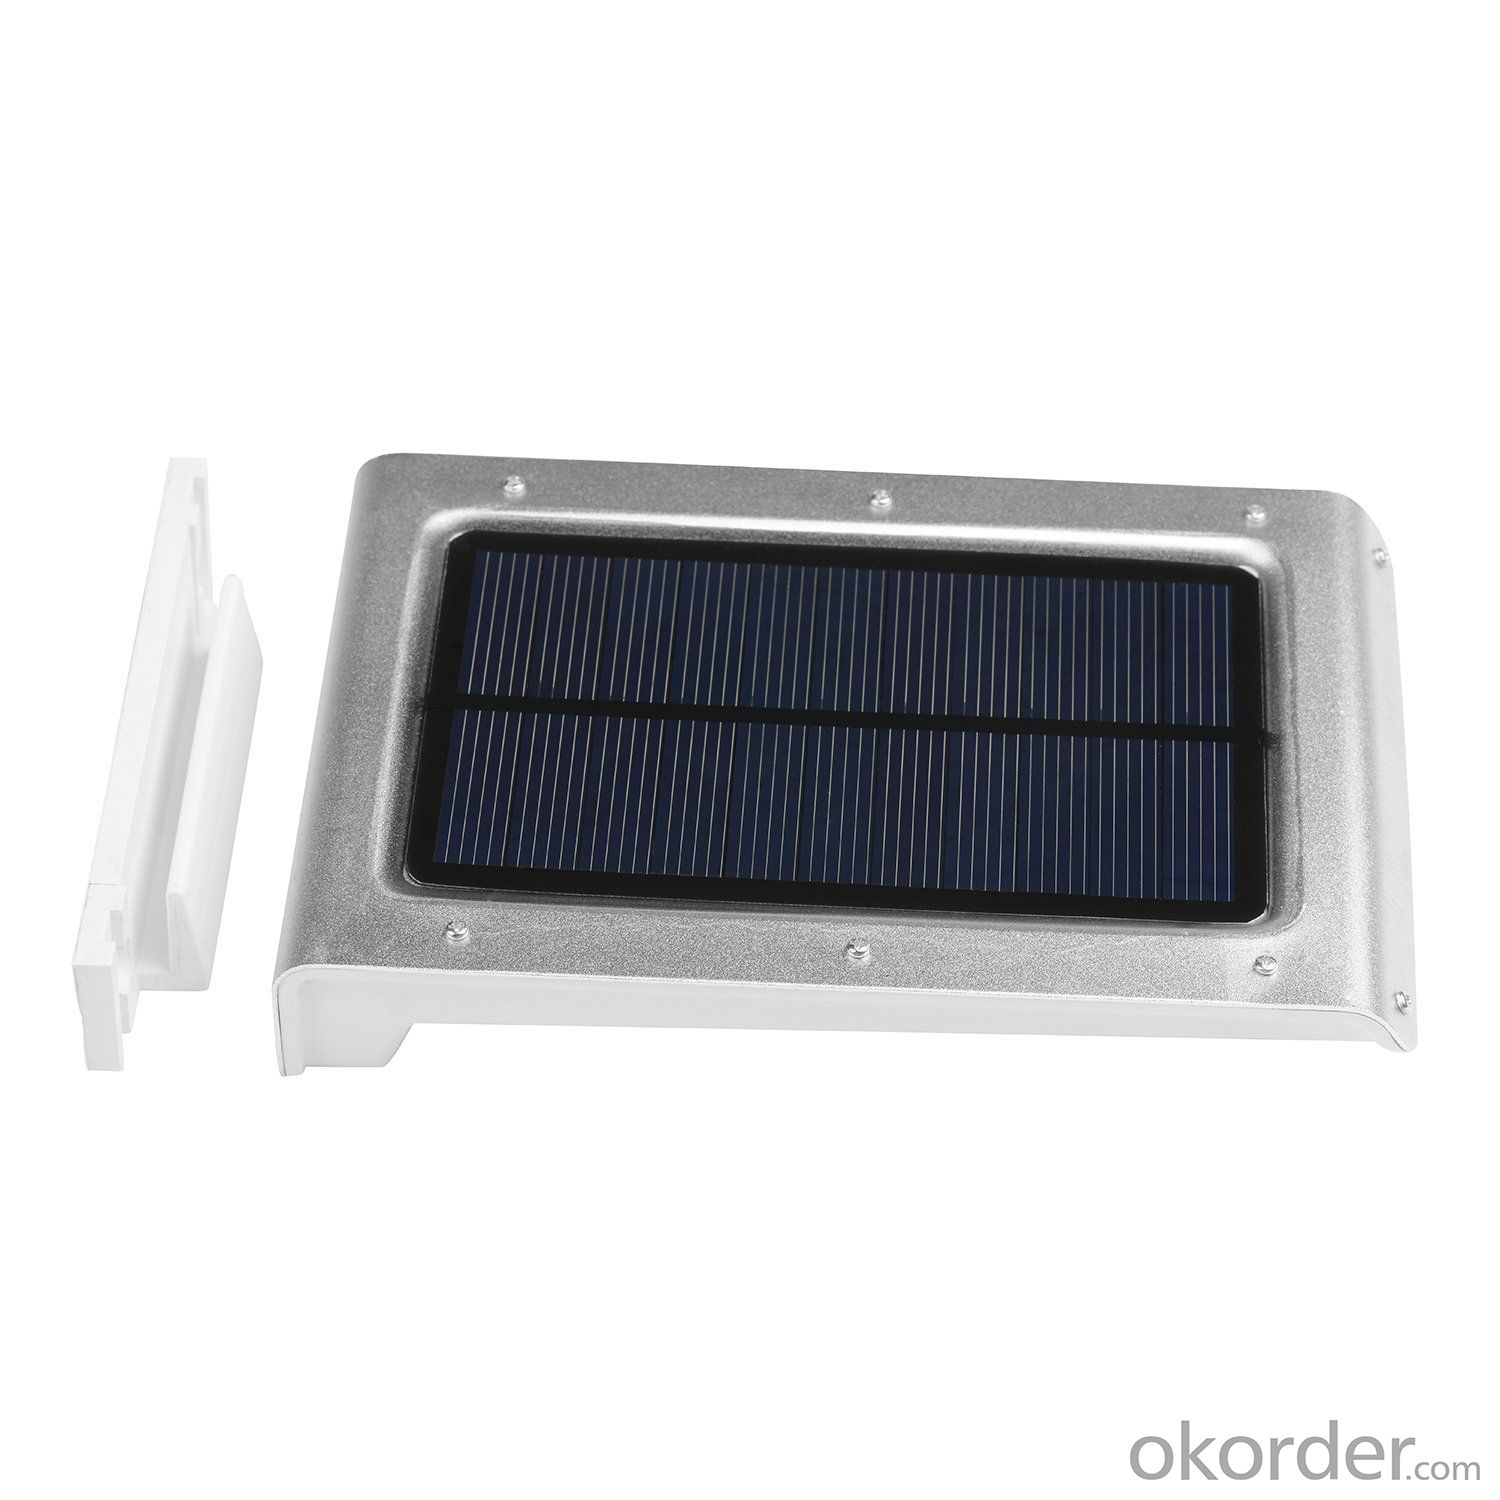 25-led solar PIR light,waterproof,wireless,with high capacity battery, Outdoor Wall Mounted